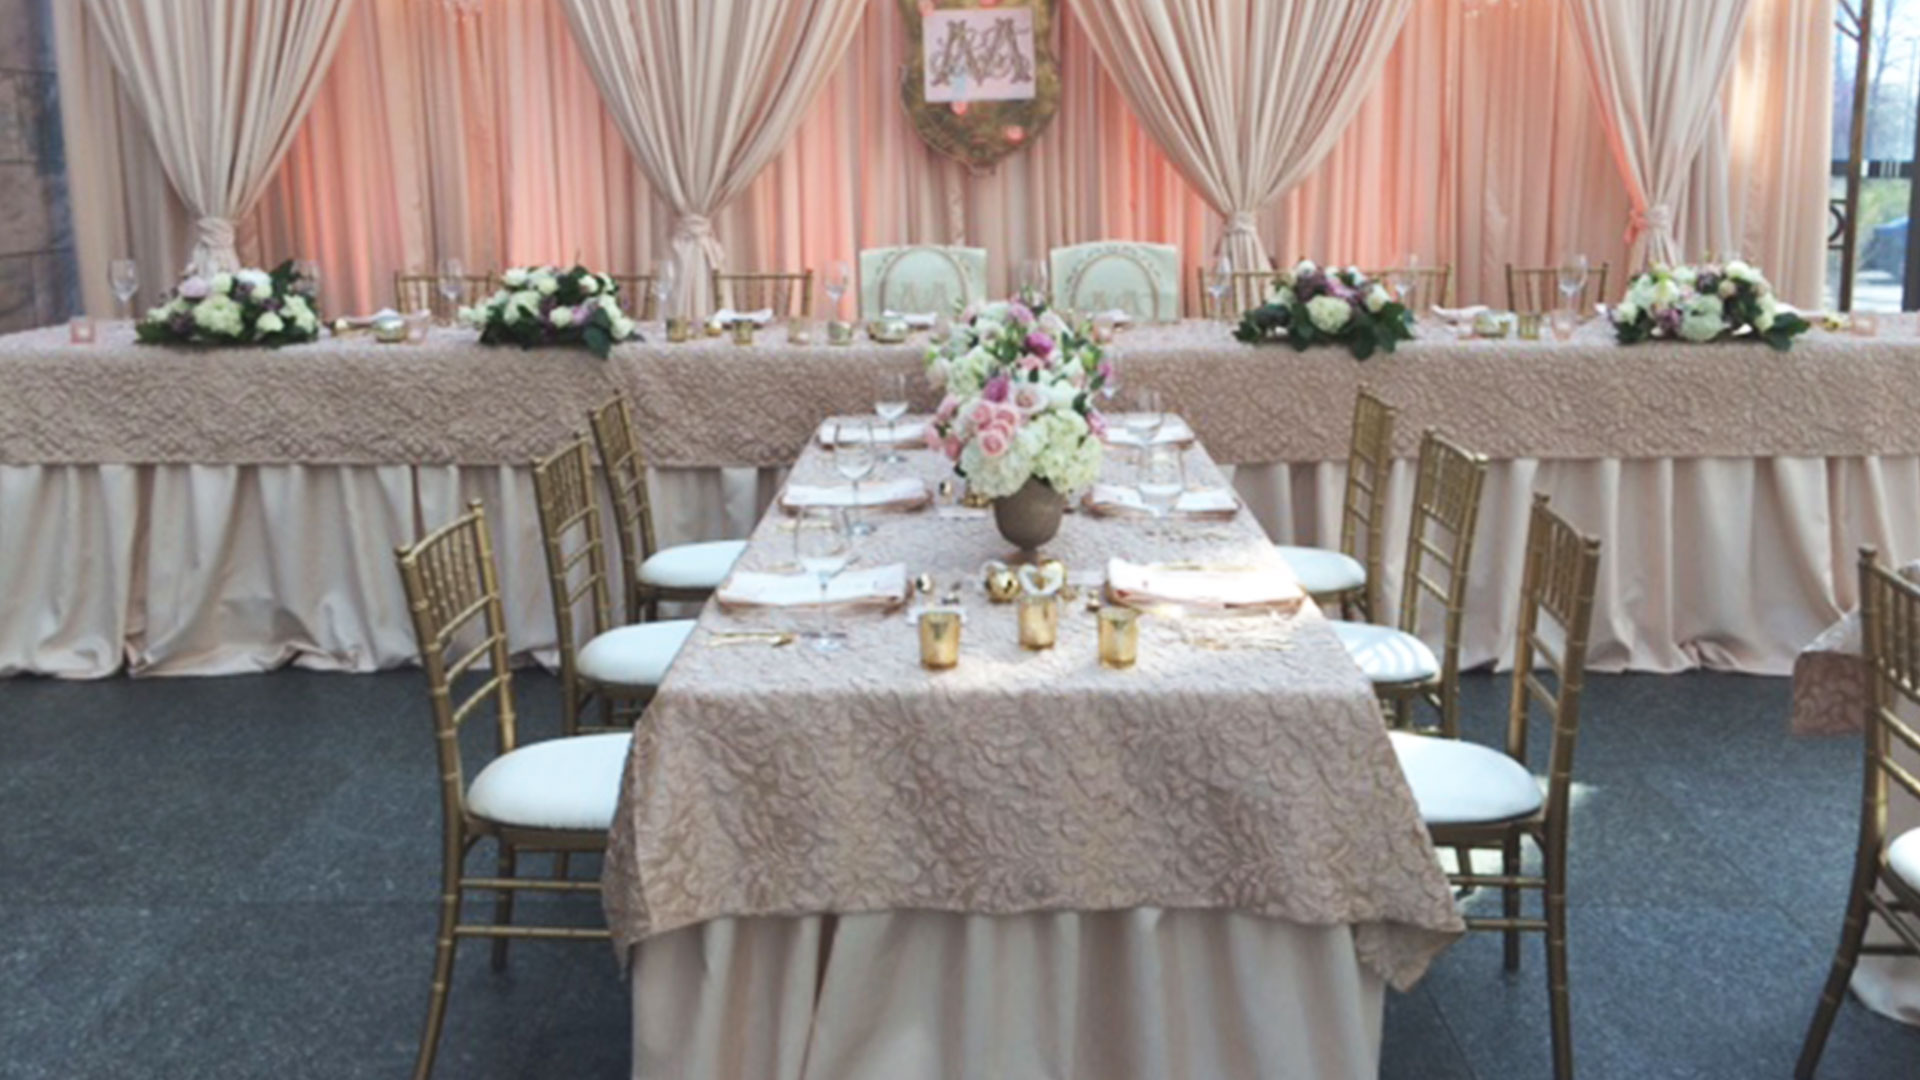 Wedding Chair Rentals Aaa Rents And Event Services Event And Party Rentals